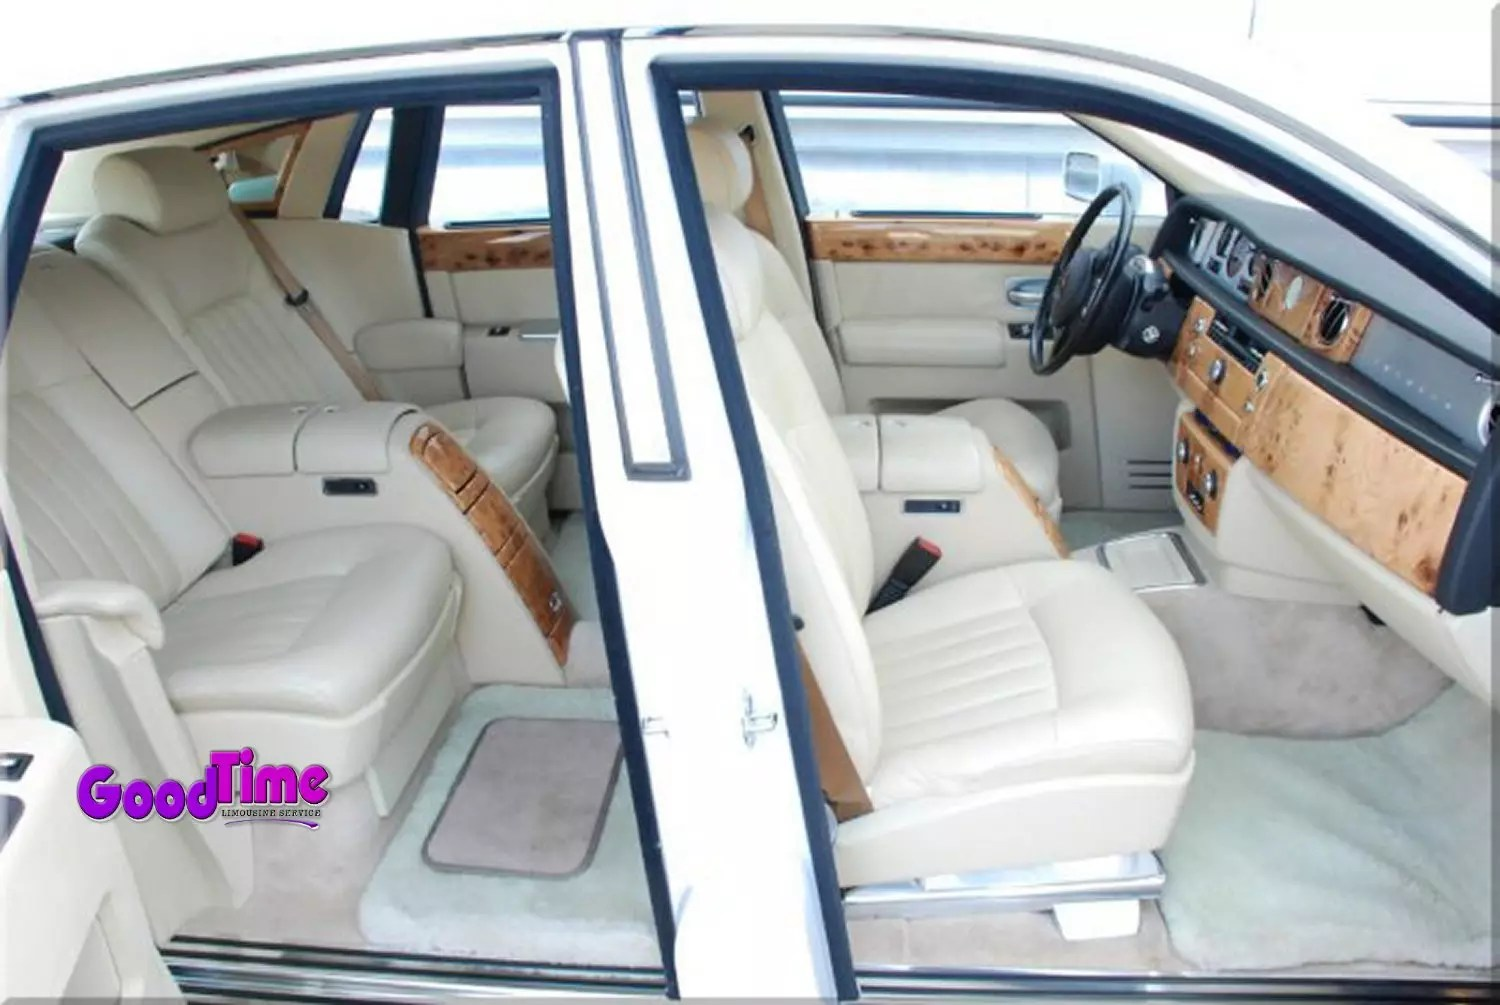 Rolls Royce Phantom White Limo Int 4 1 LIMO RENTAL FLEET